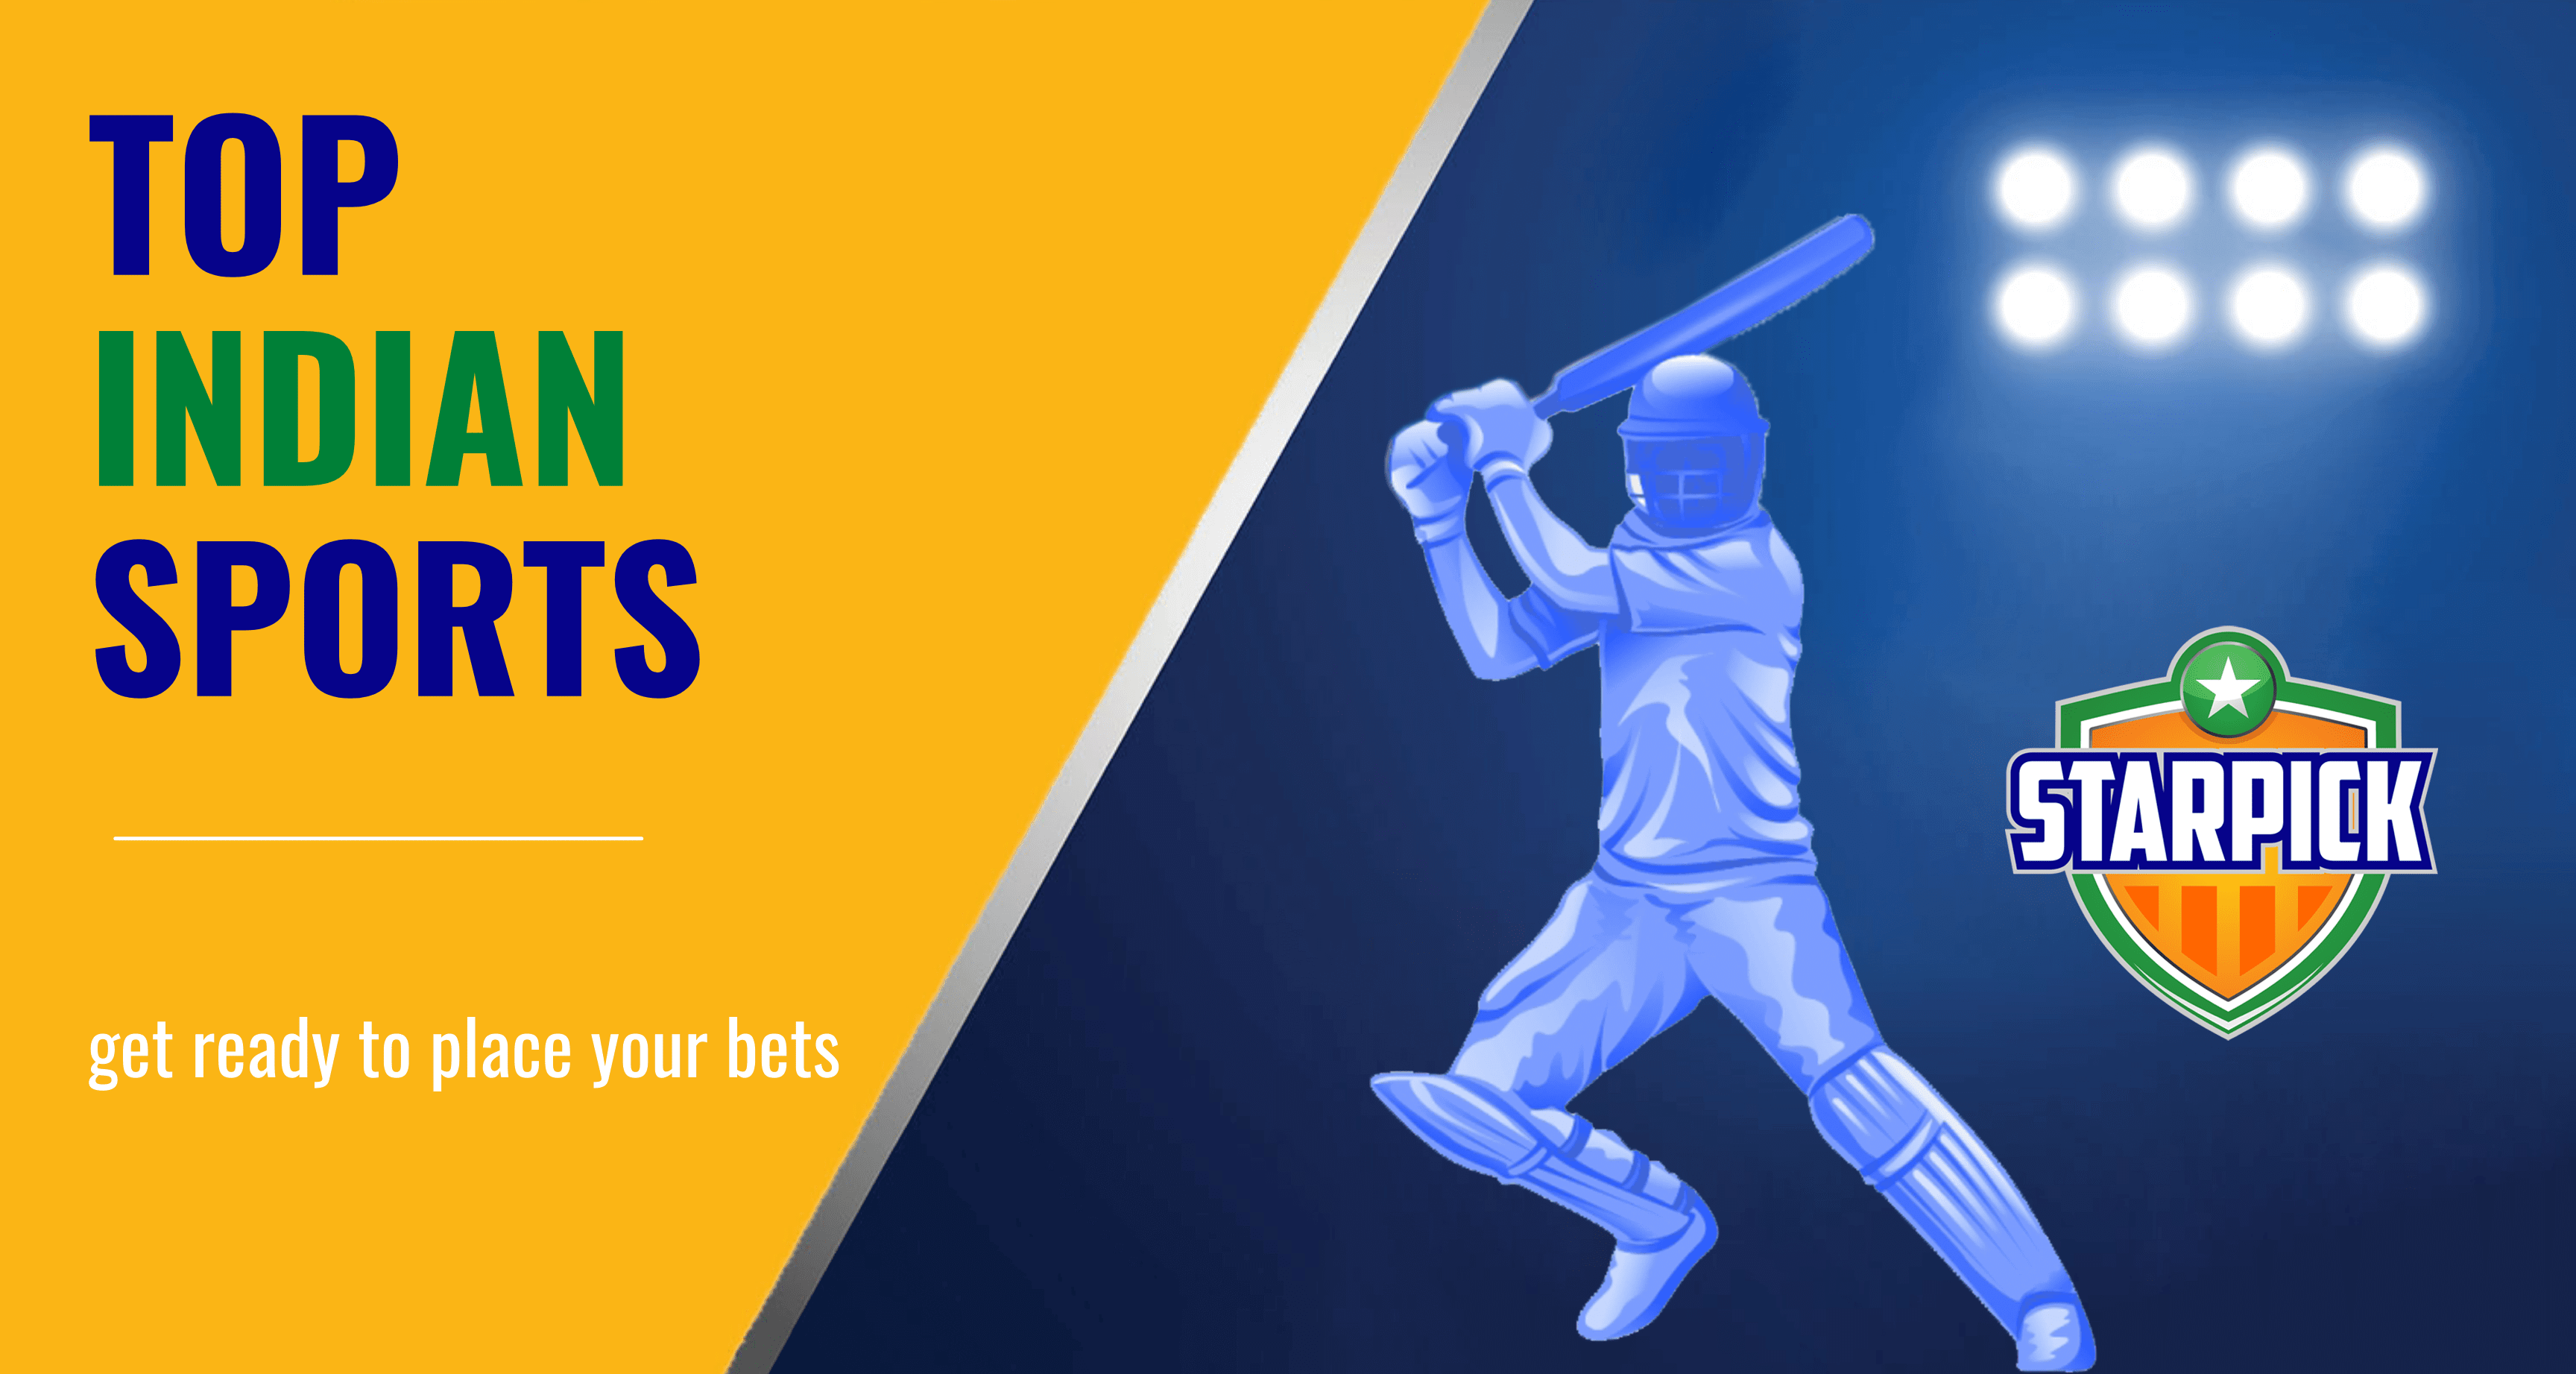 Top Indian Sports